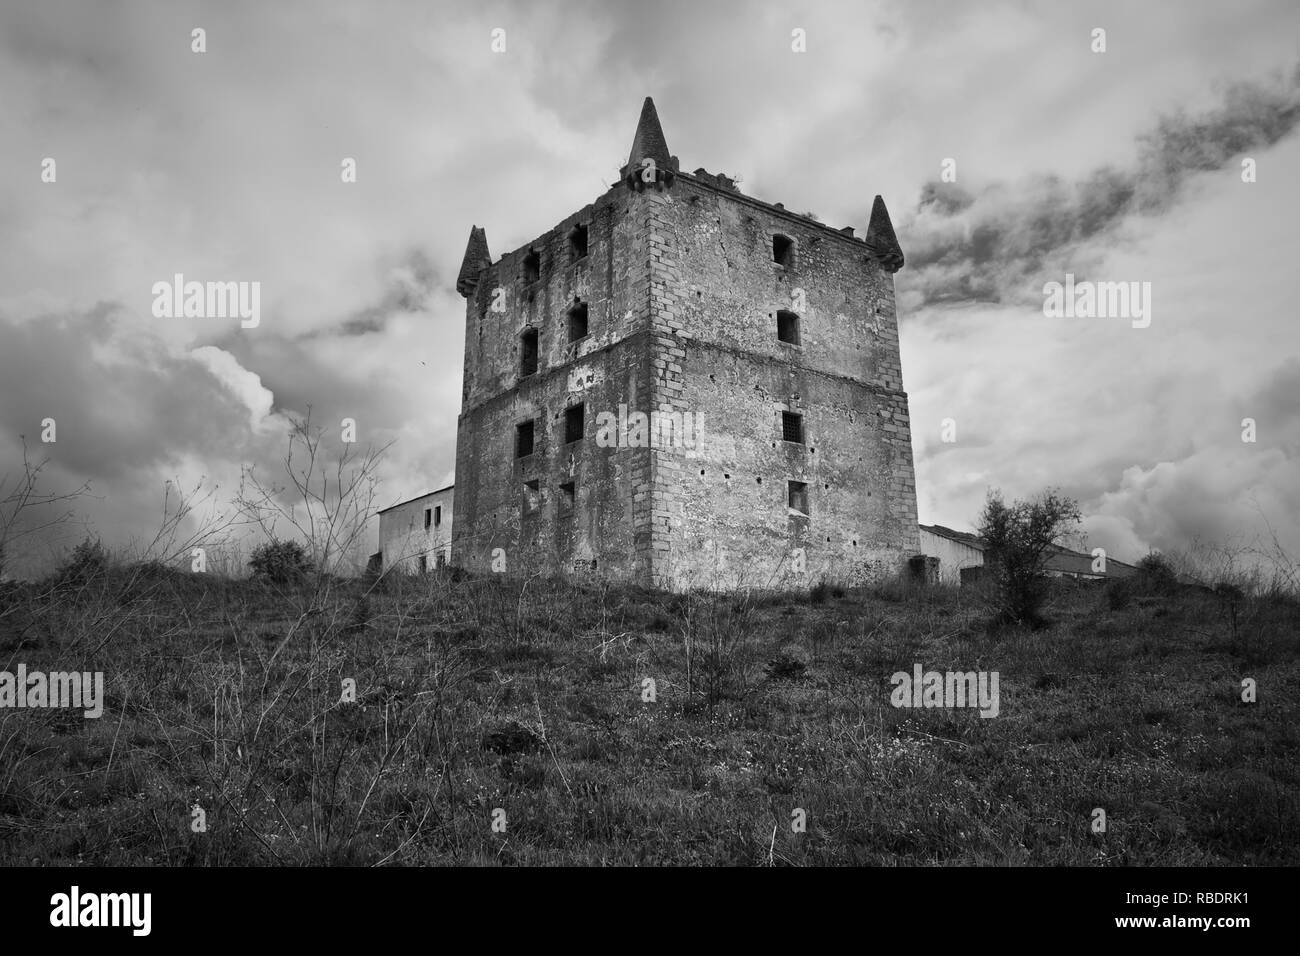 Old solar, hunting home, known as the Eagles Tower, building from the early sixteenth century. Village of Brotas, Mora, Evora, Alentejo, southern Port - Stock Image